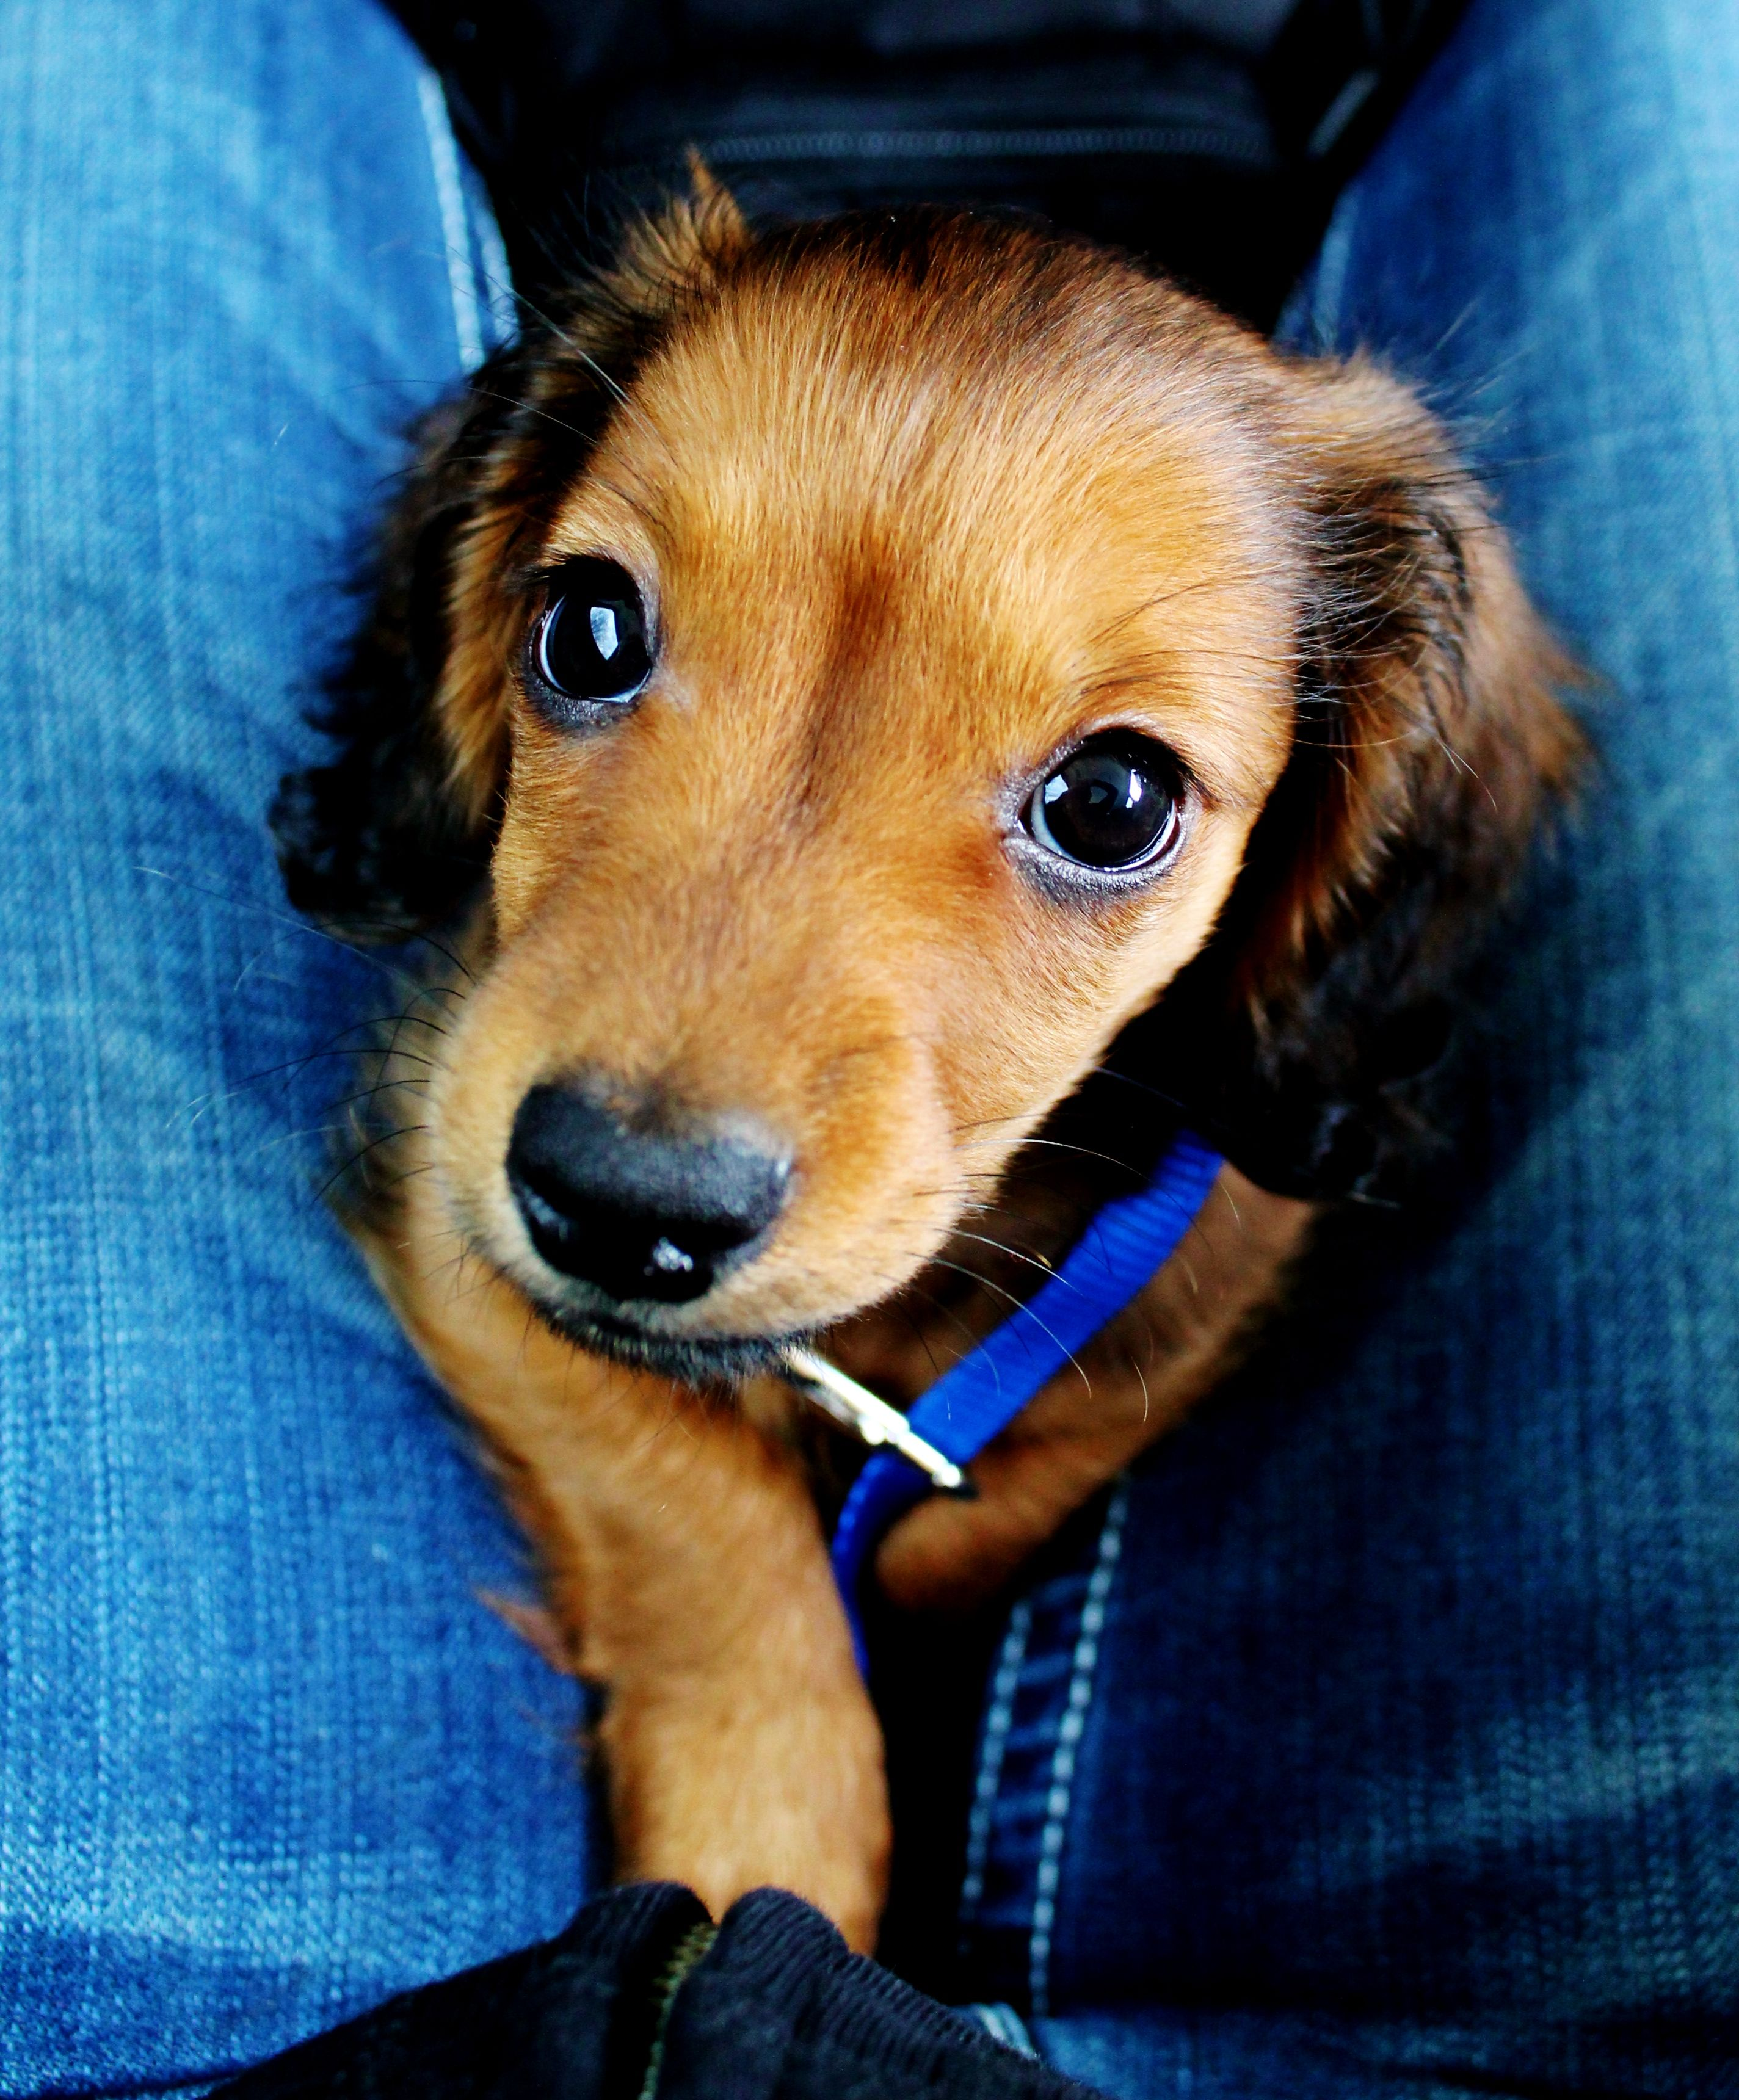 Teddy the doxie puppy